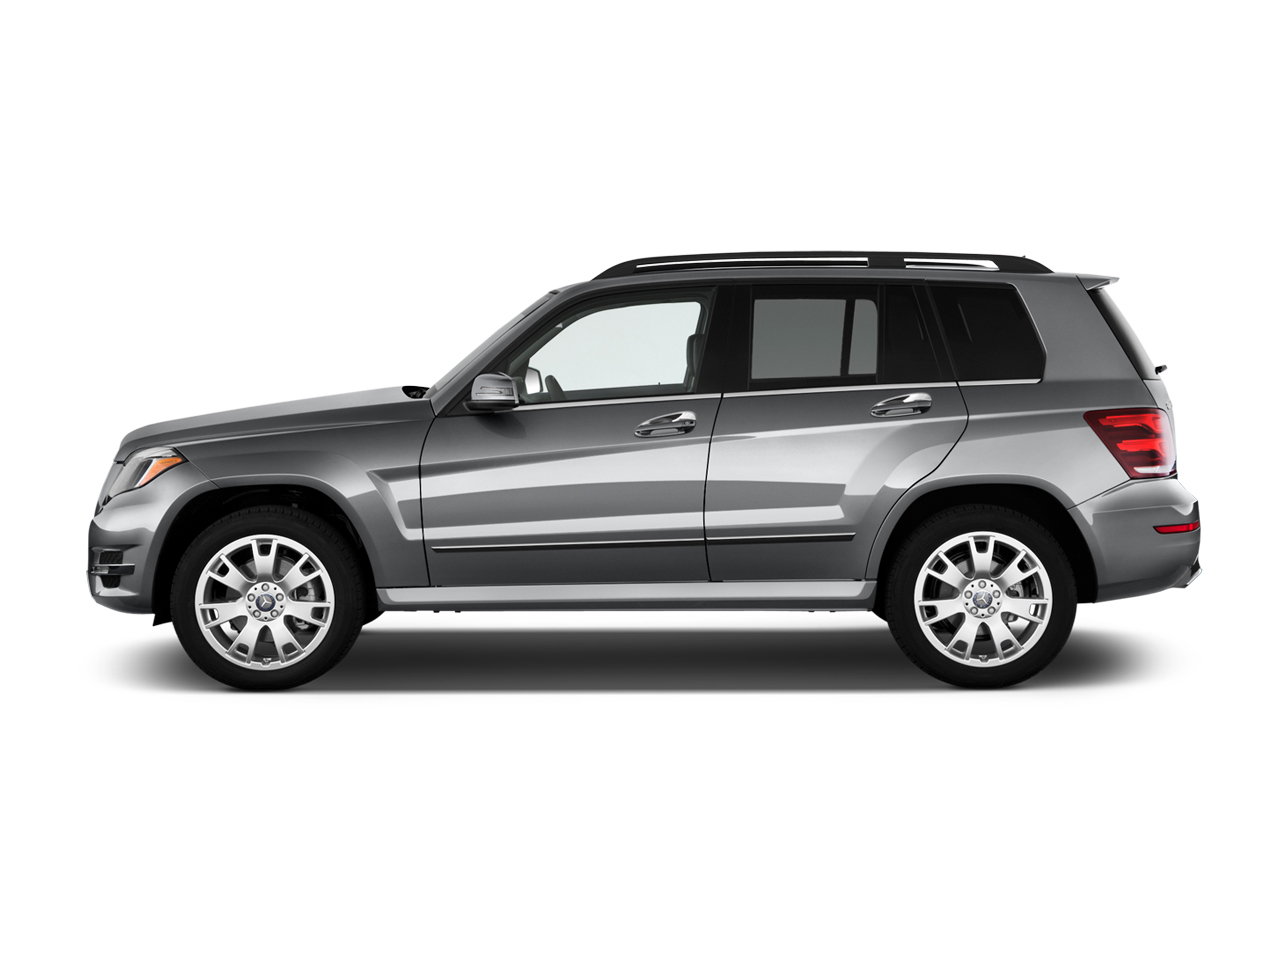 Mercedes glk 350 reviews 2015 release date price and specs for Mercedes benz glk 350 review